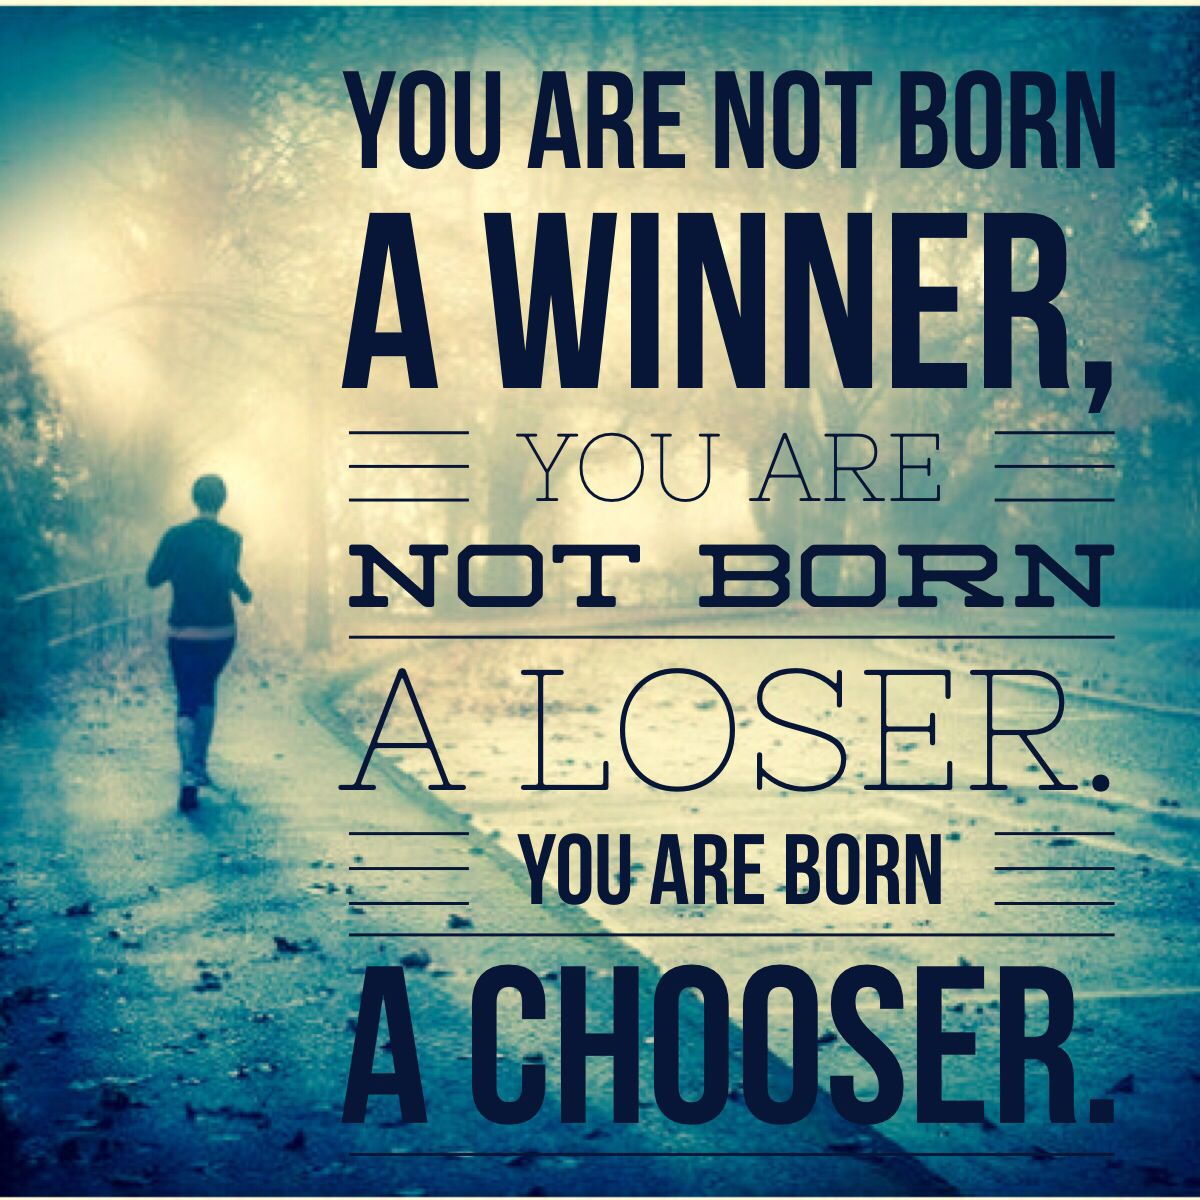 You Are Not Born A Winner You Are Not Born A Loser You Are Born A Chooser Rocky Balboa Quotes Inspirational Quotes Leader In Me